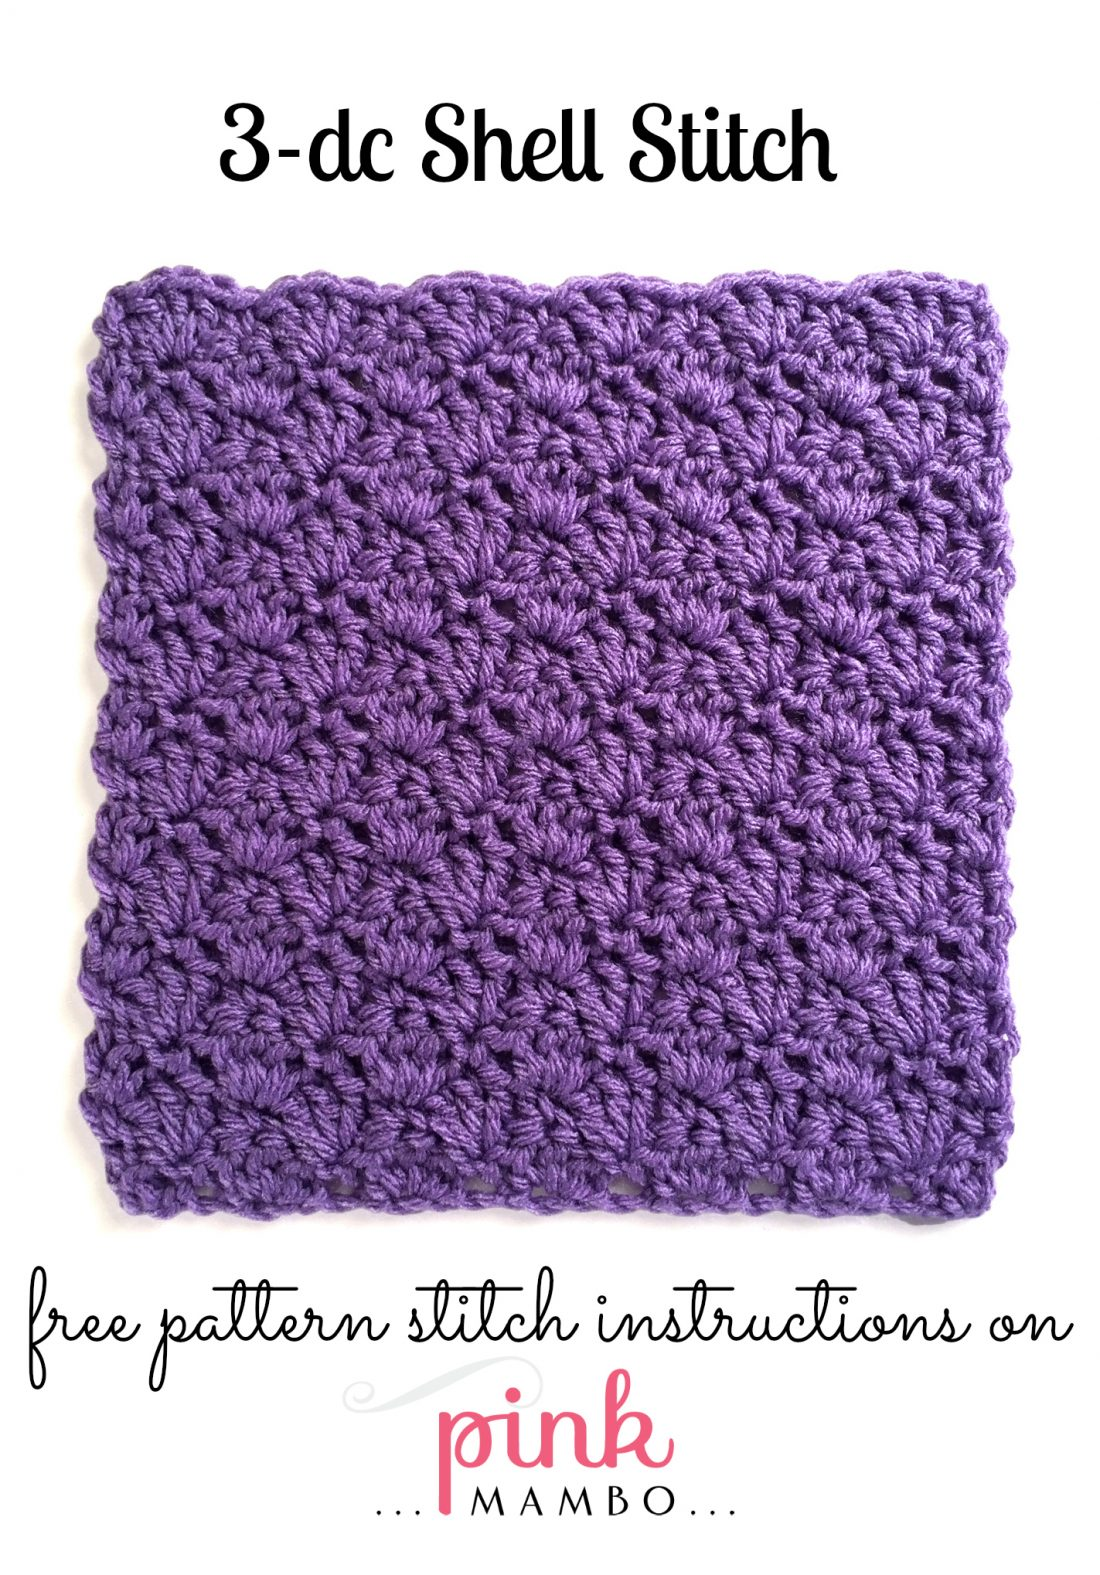 Crochet Patterns Stitches : Double Crochet Shell Stitch Pattern